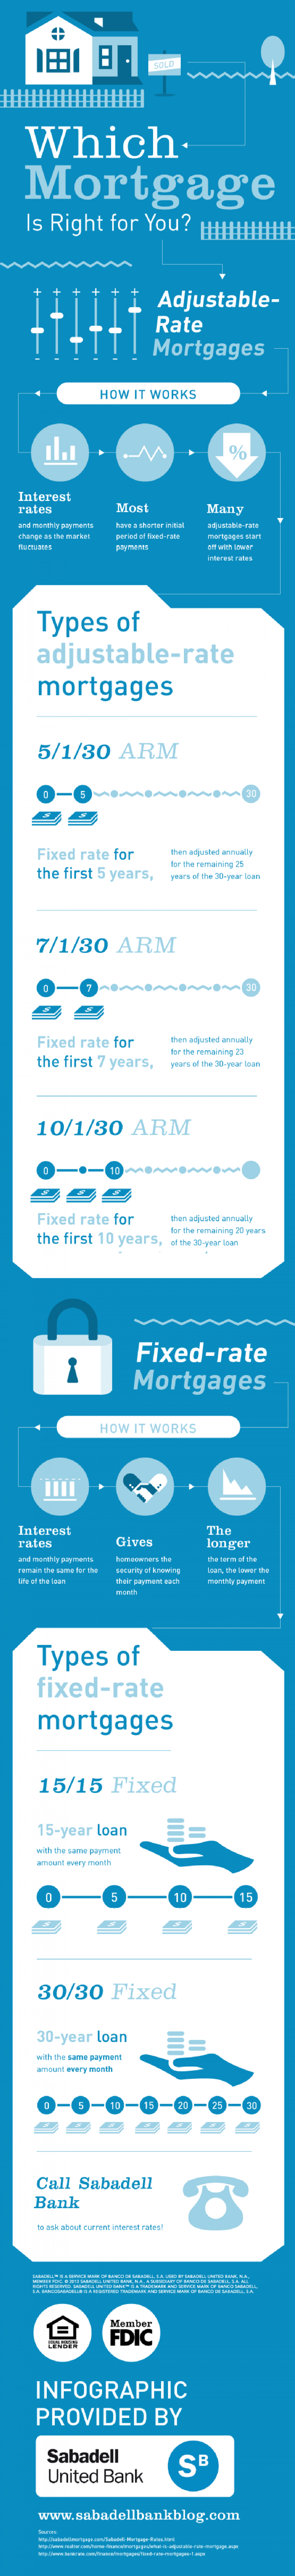 Which Mortgage Is Right for You? Infographic